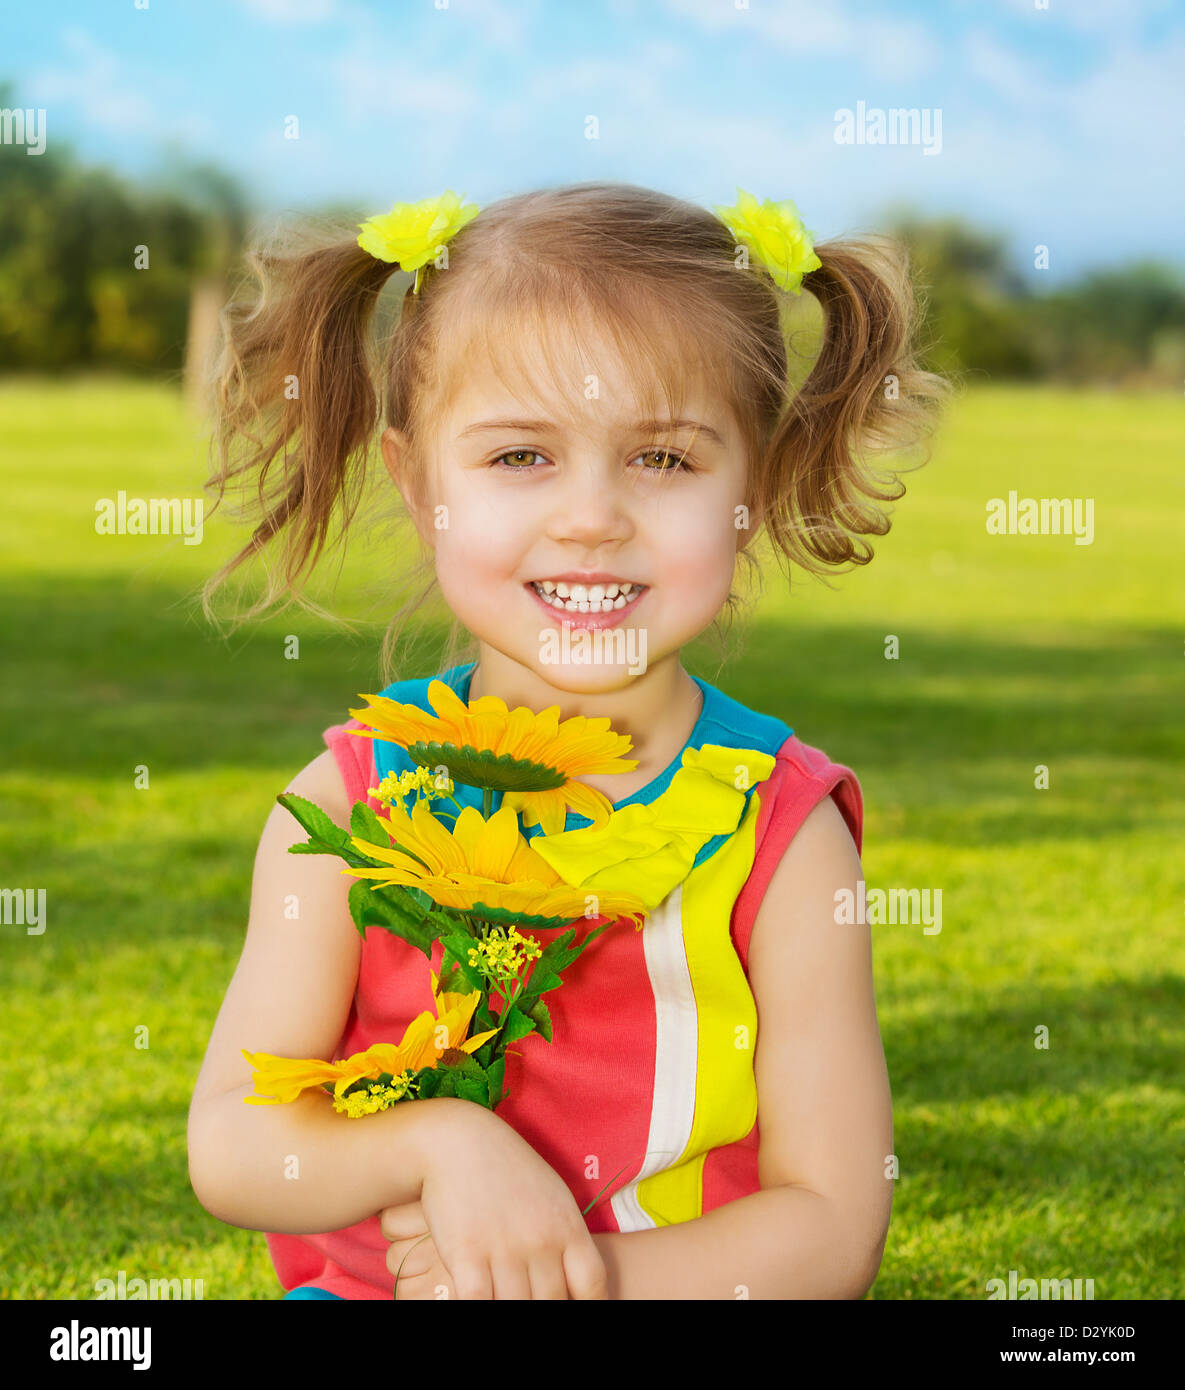 picture of cute happy little girl wearing colorful dress and holding